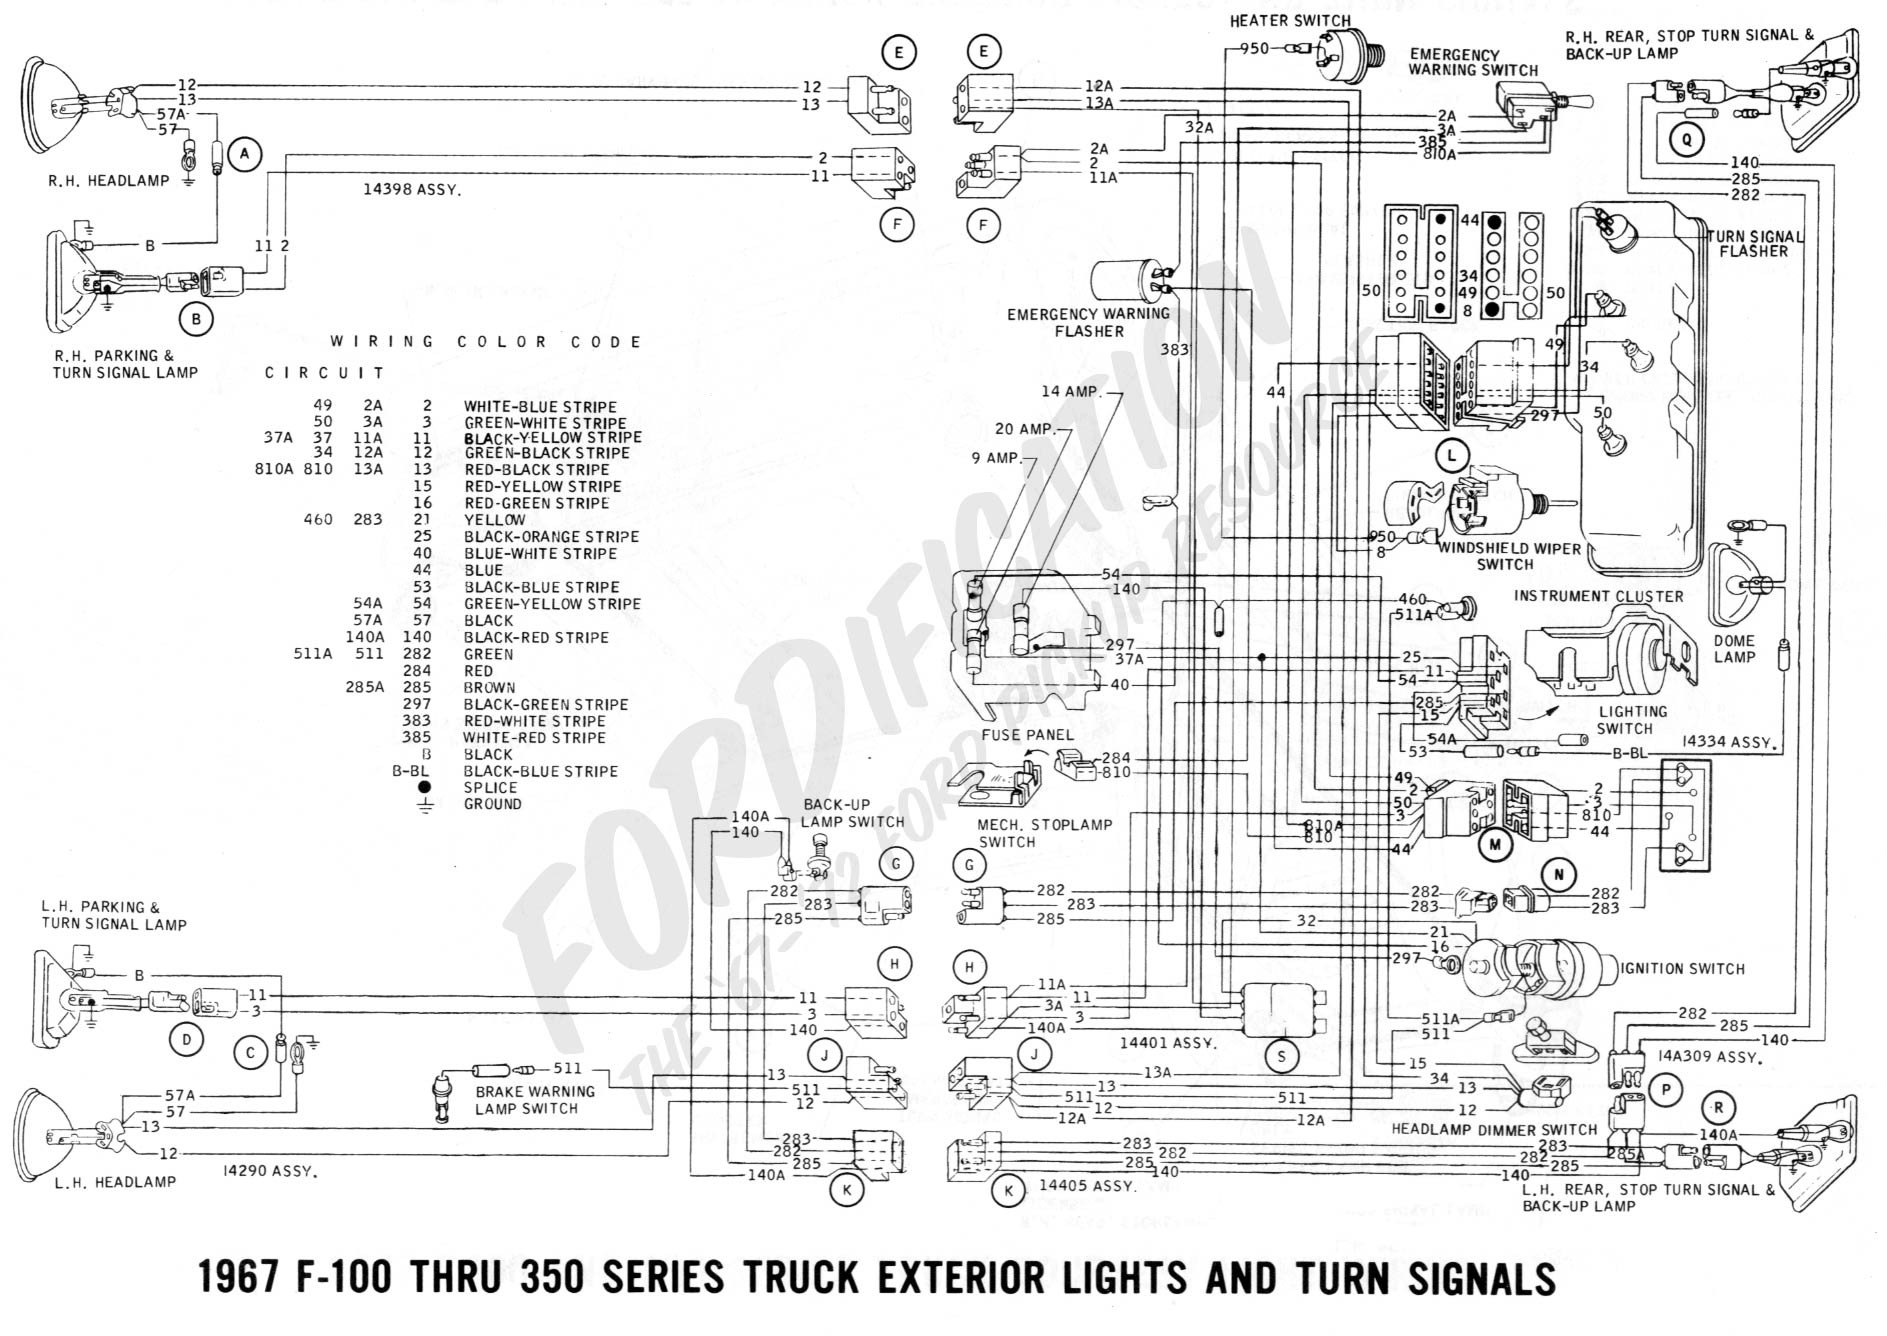 Universal Car Horn Wiring Diagram Auto Electrical Turn Signal Switch Vintage Hot